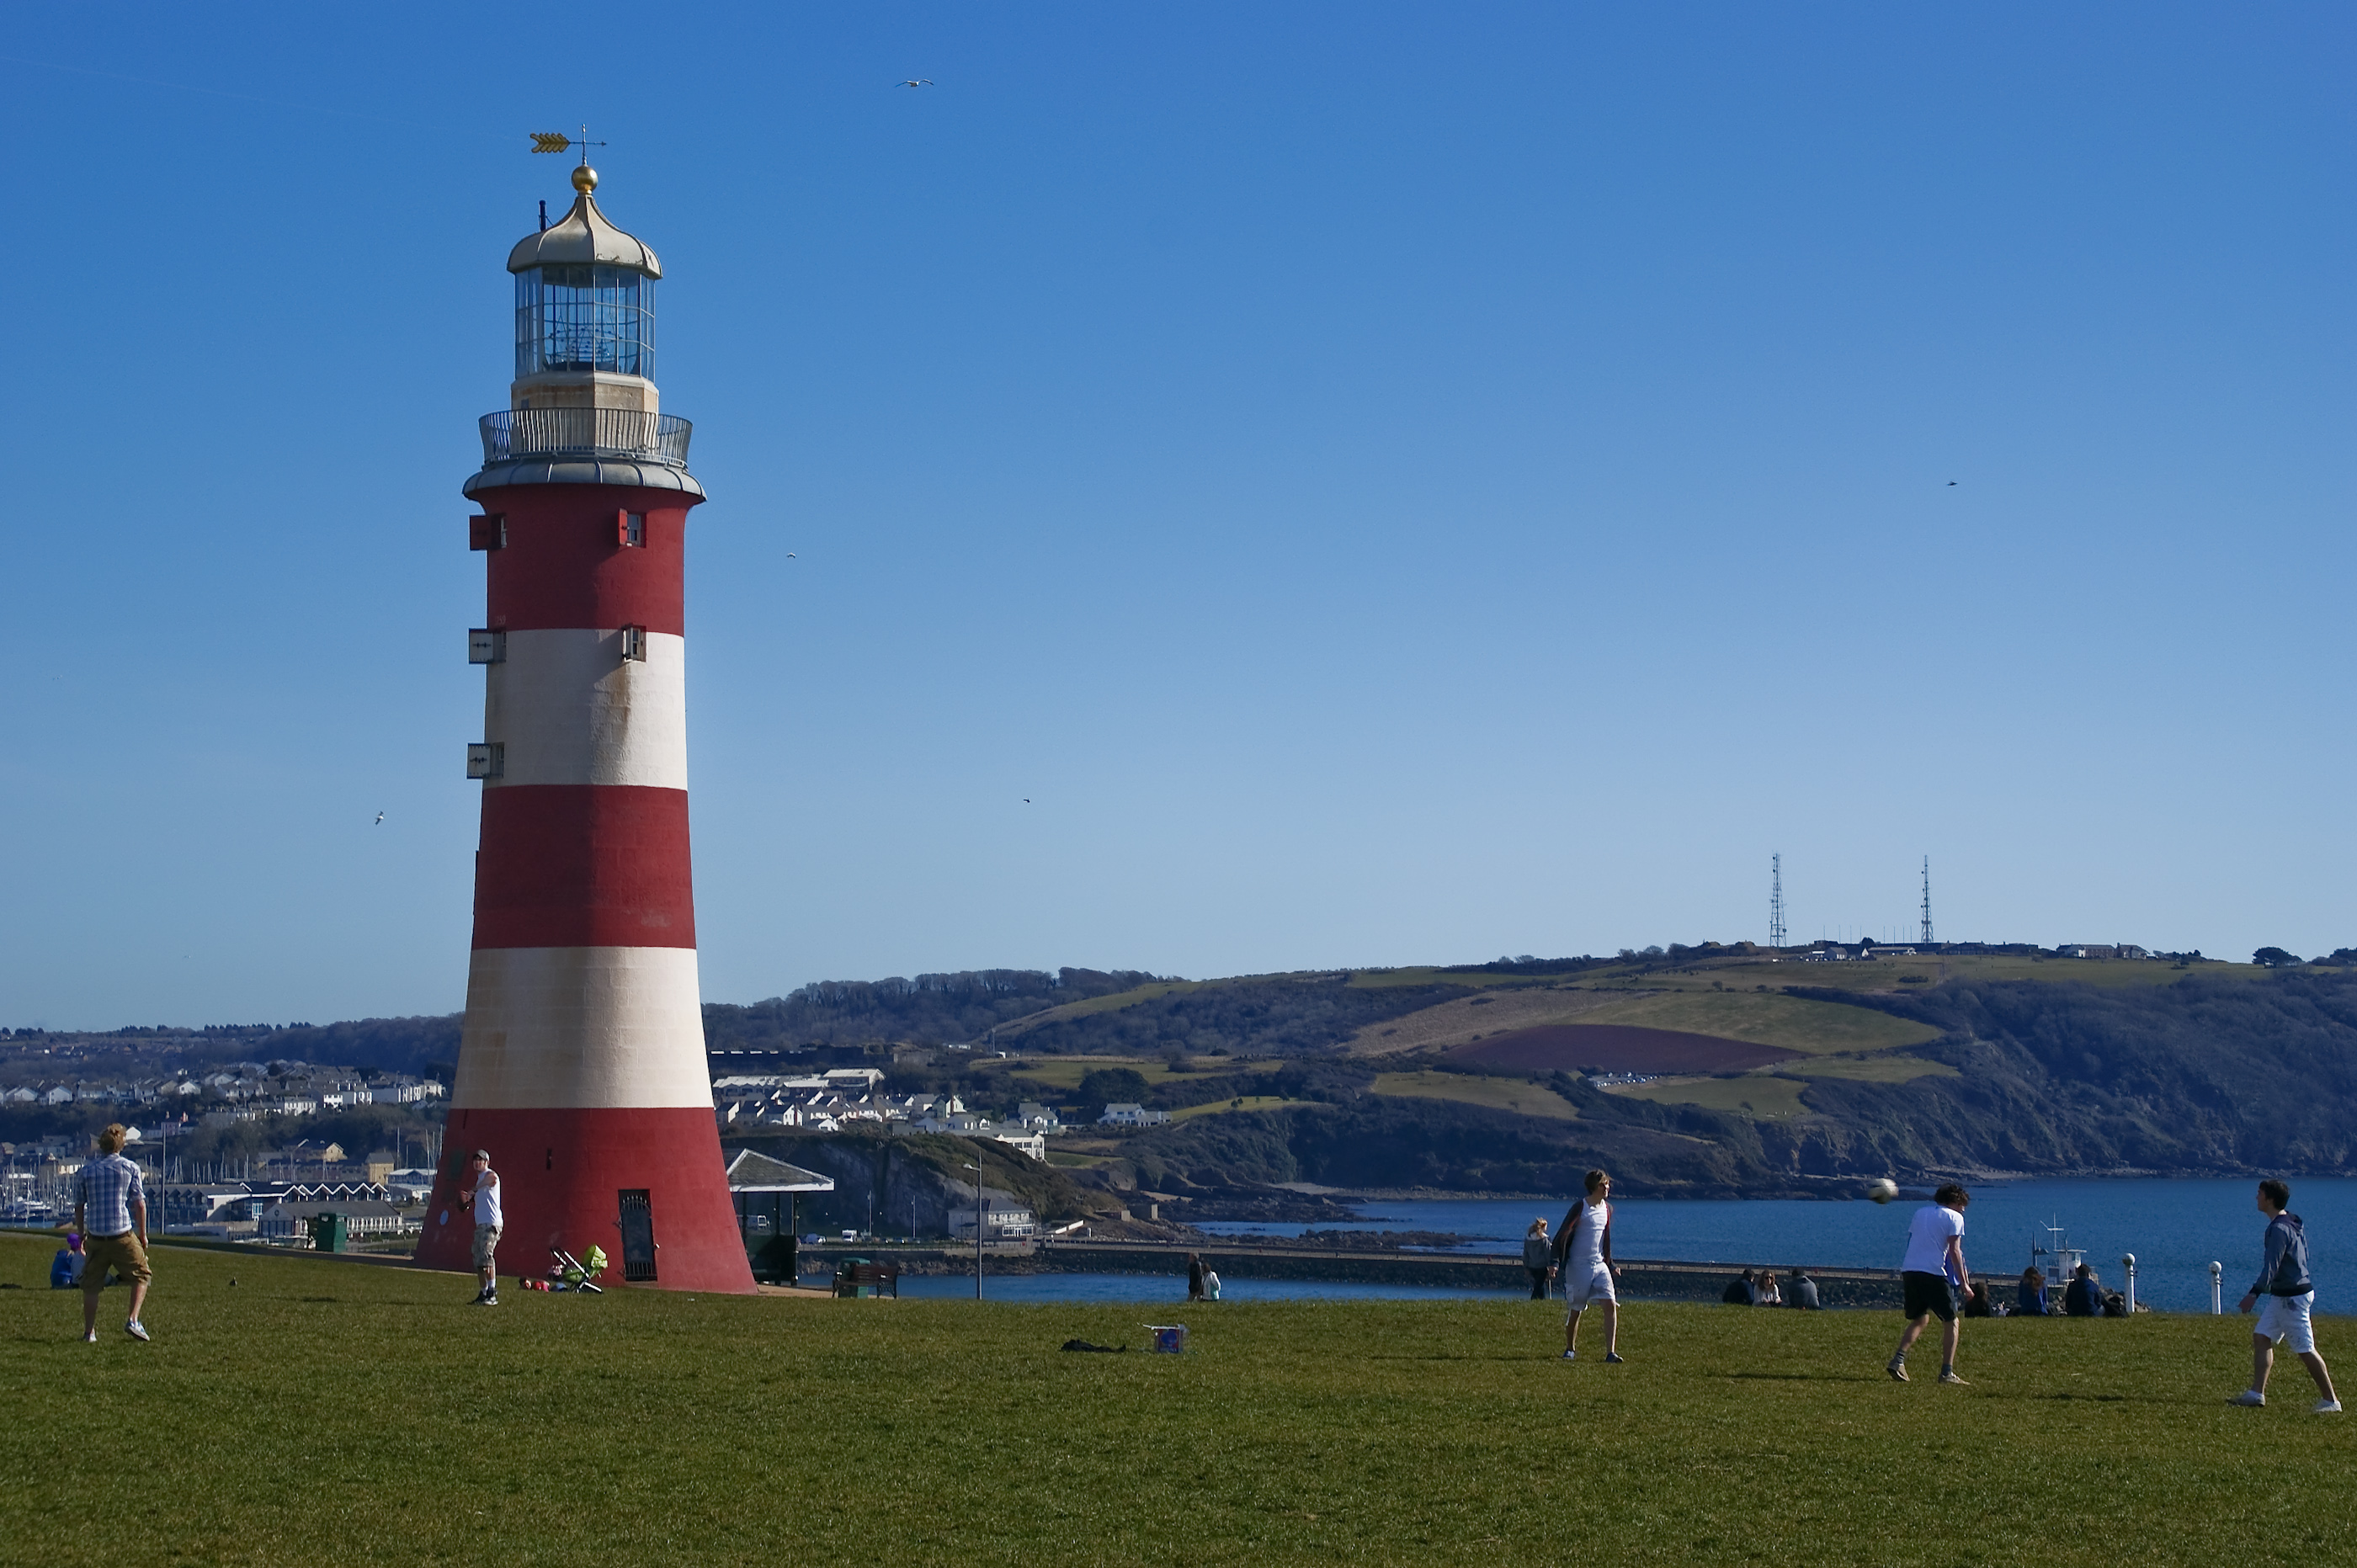 Smeatons_tower_-_Plymouth_Hoe.jpg